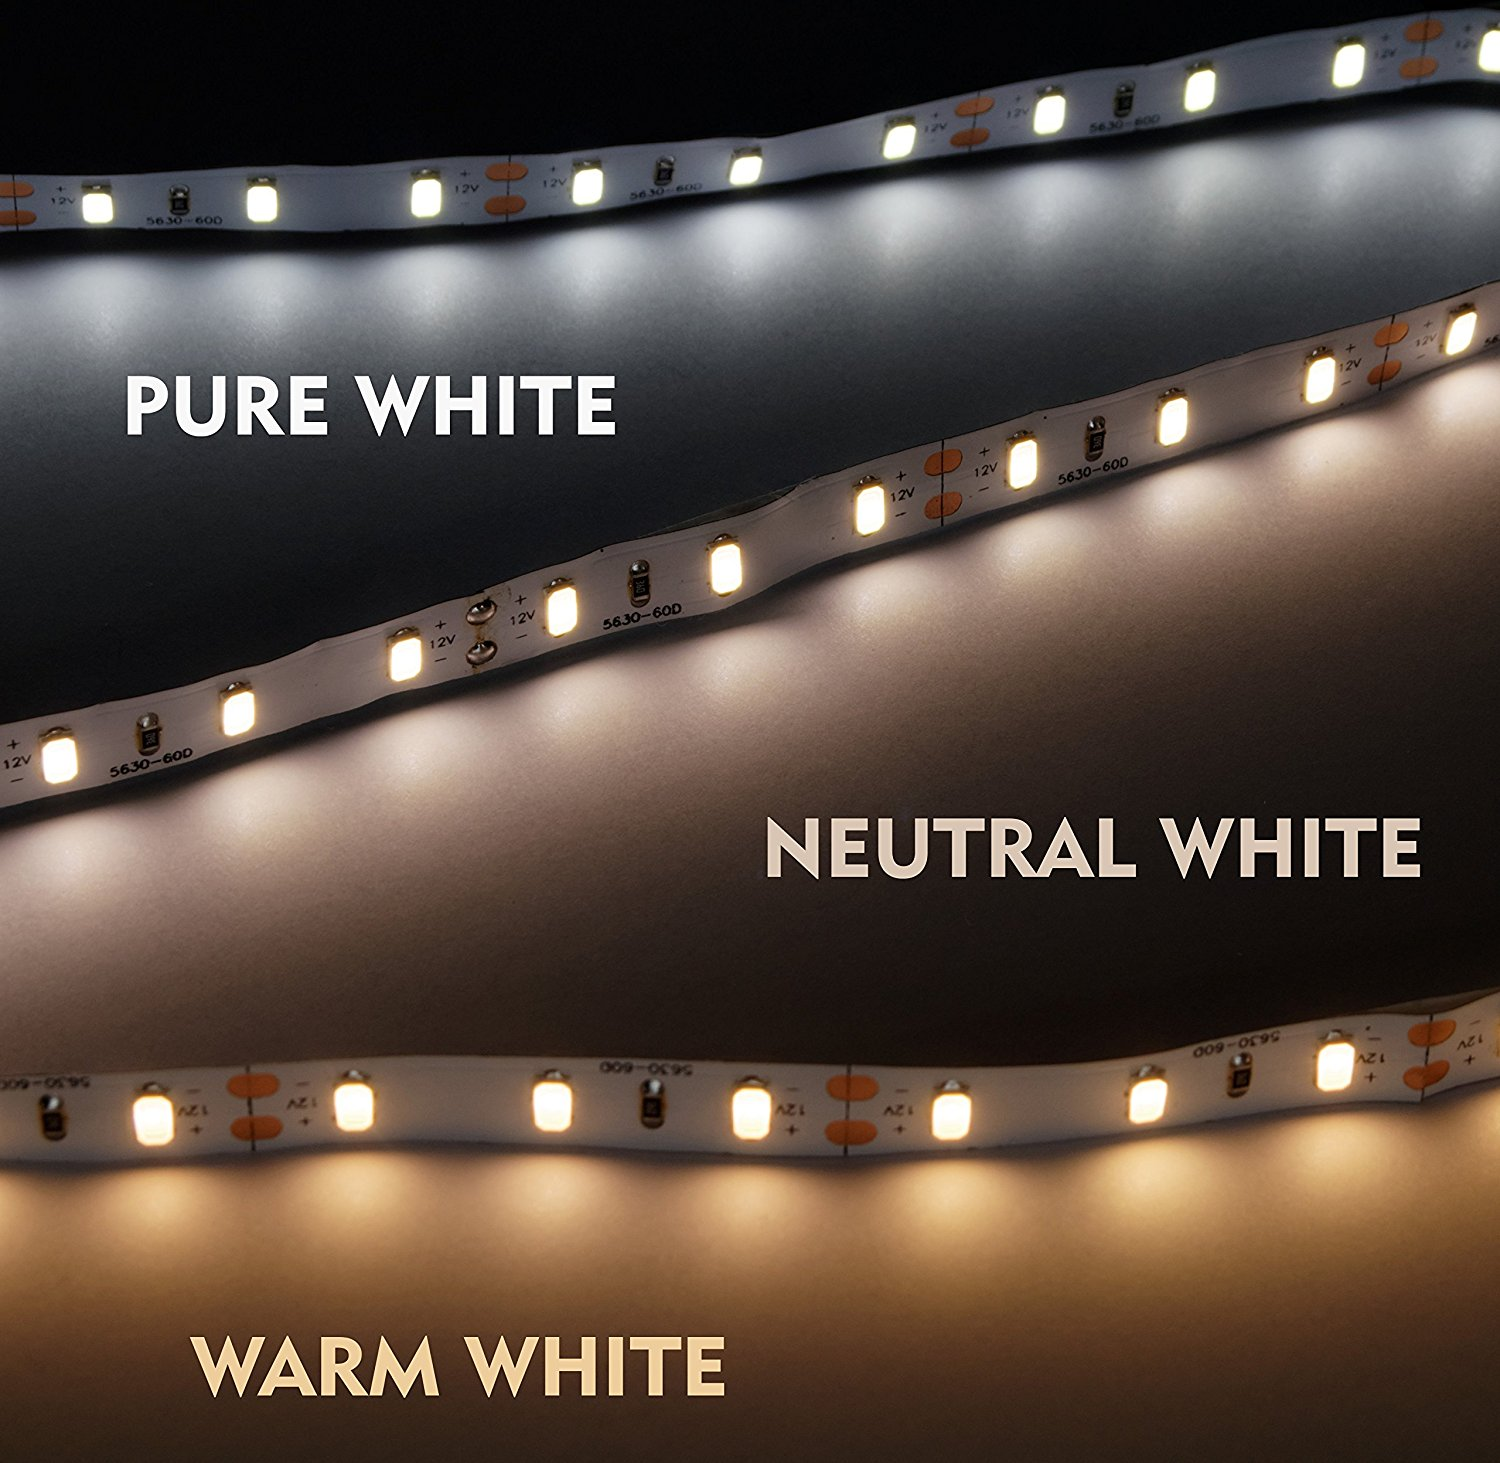 How To Make Flexible Led Panels Diy Flex Lights Cable Light Google Patents On 12v Parallel Or Series Wiring Tape